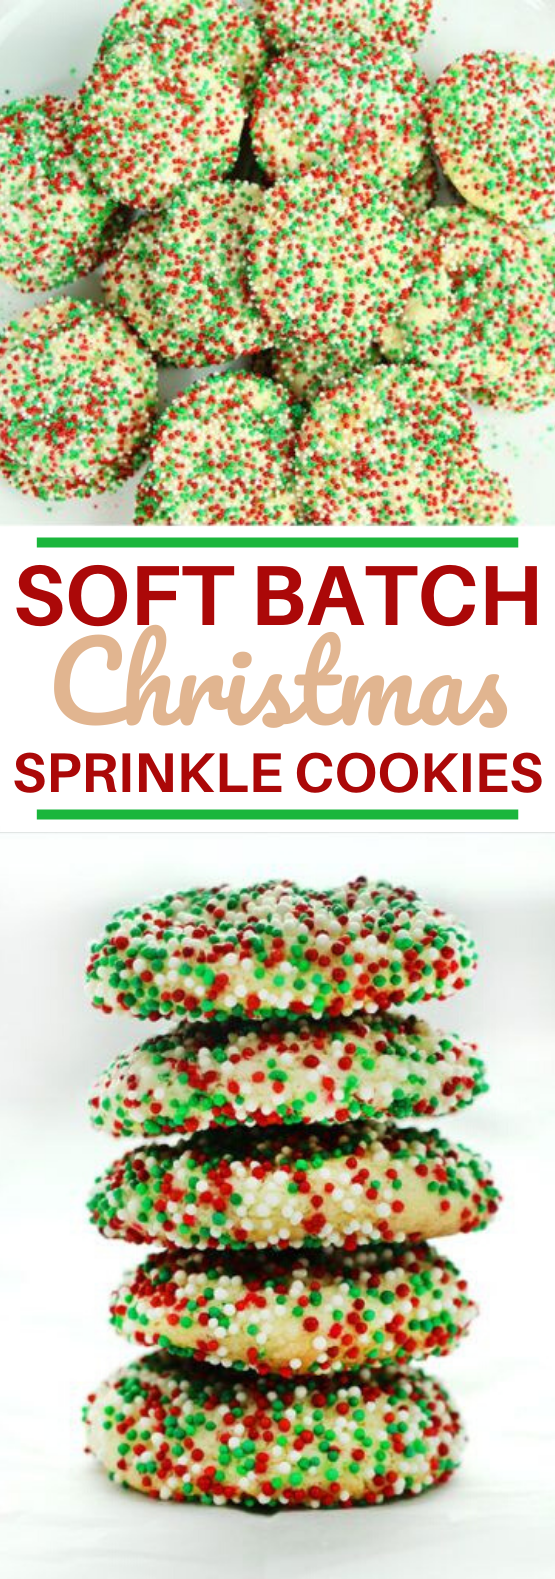 Soft Batch Christmas Sprinkle Cookies #cookies #desserts #baking #christmas #recipes